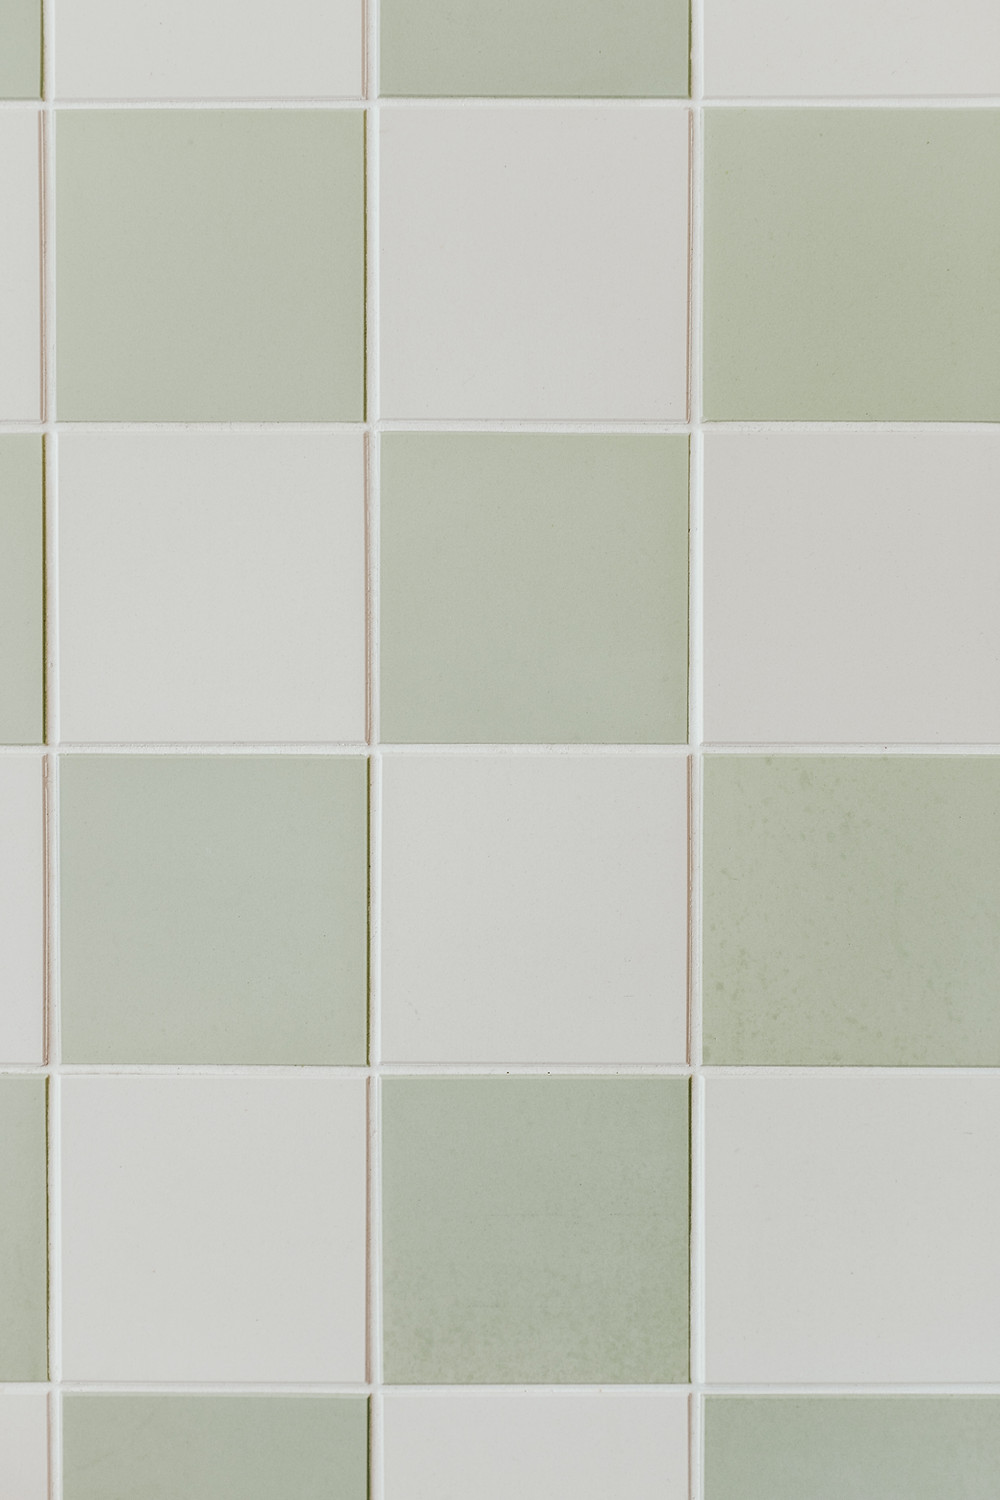 Steam Cleaning Grout and Tile Eliminates Bacteria